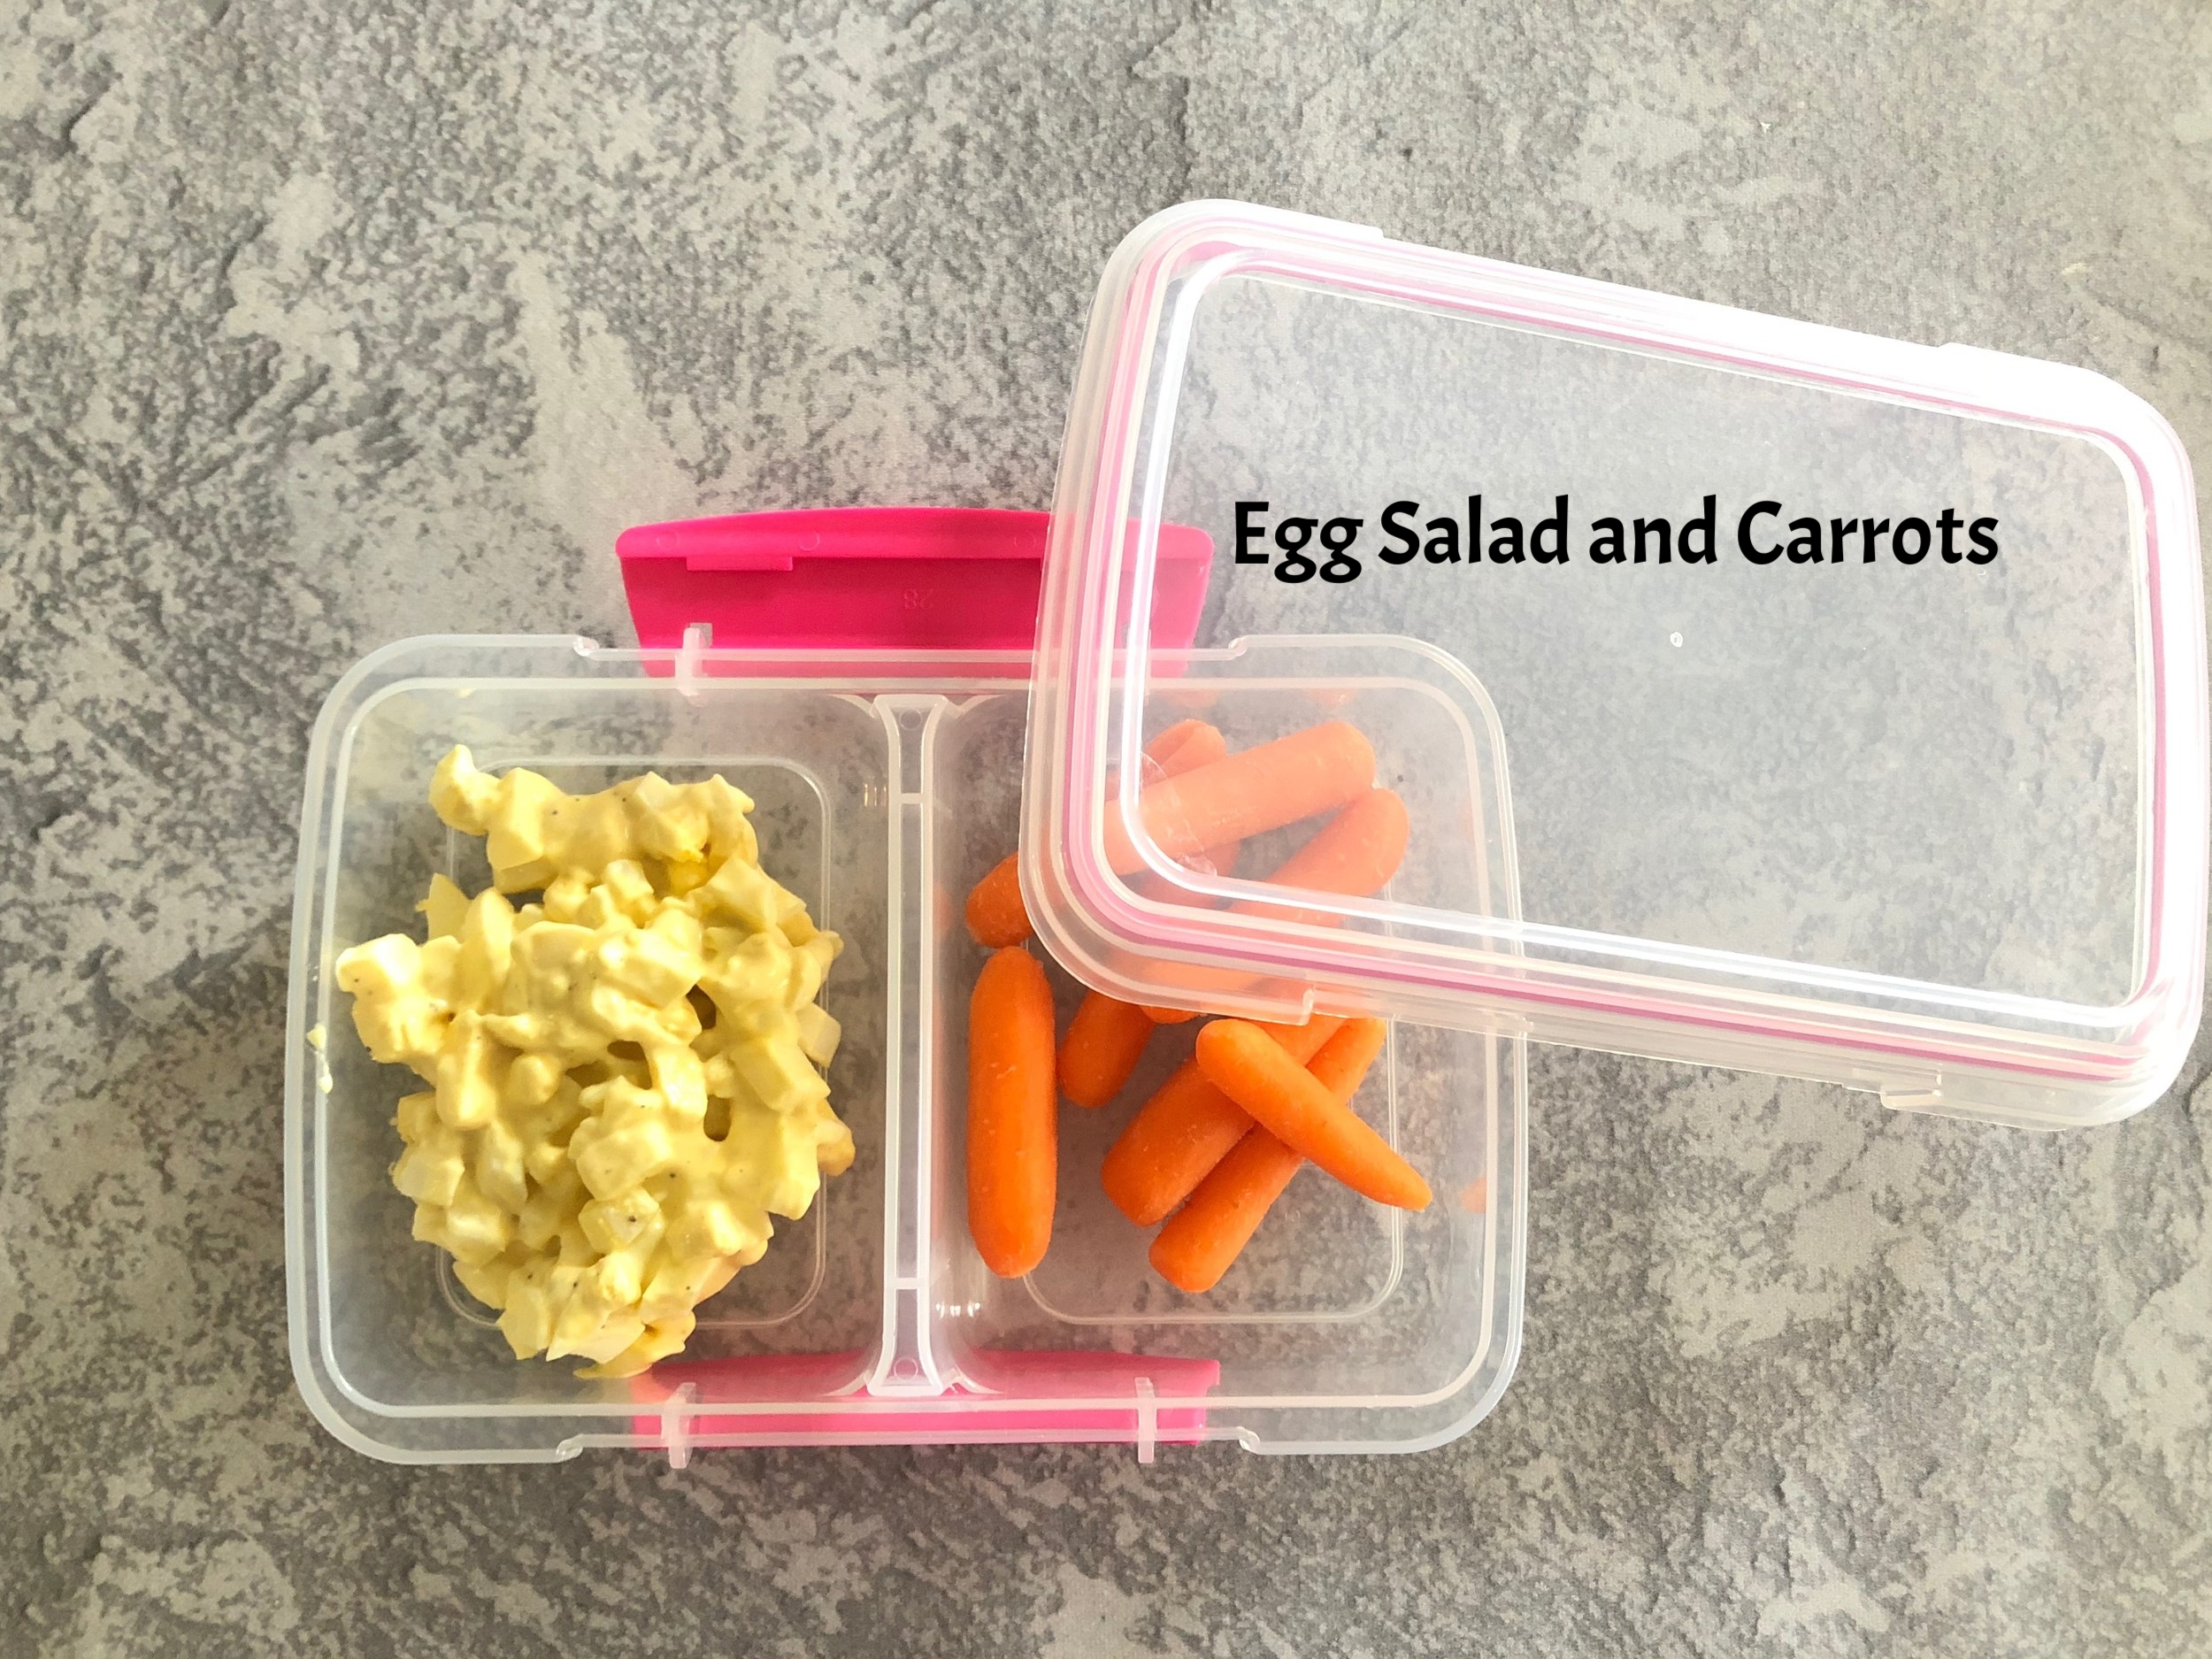 Lunch Egg Salad and Carrots Keto and Low Carb.jpg